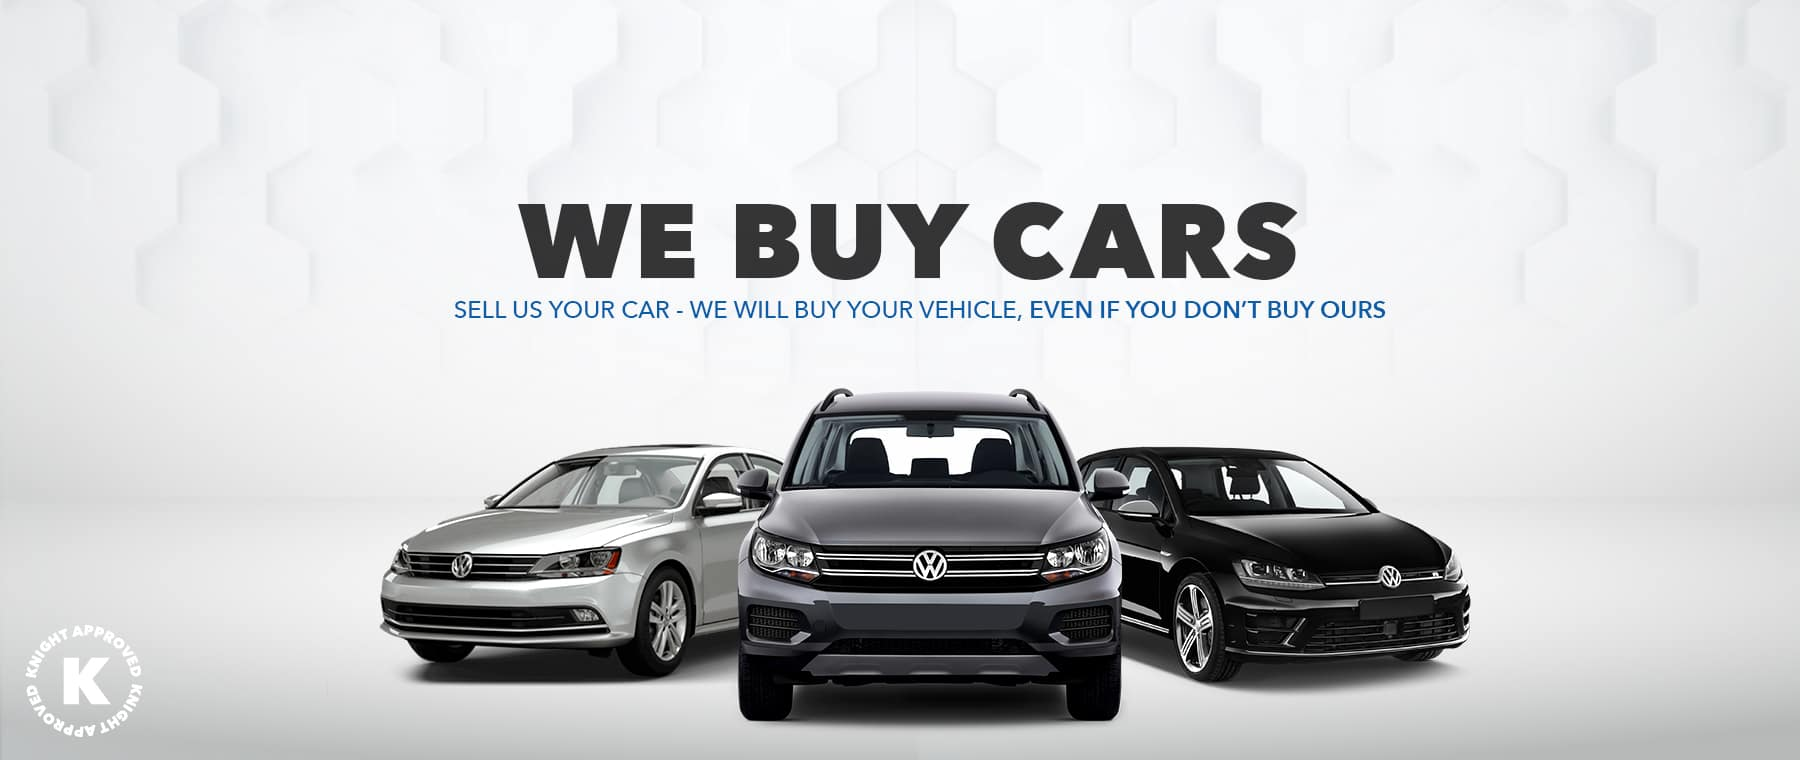 car volkswagen event tax repair near me dealerships kamloops no